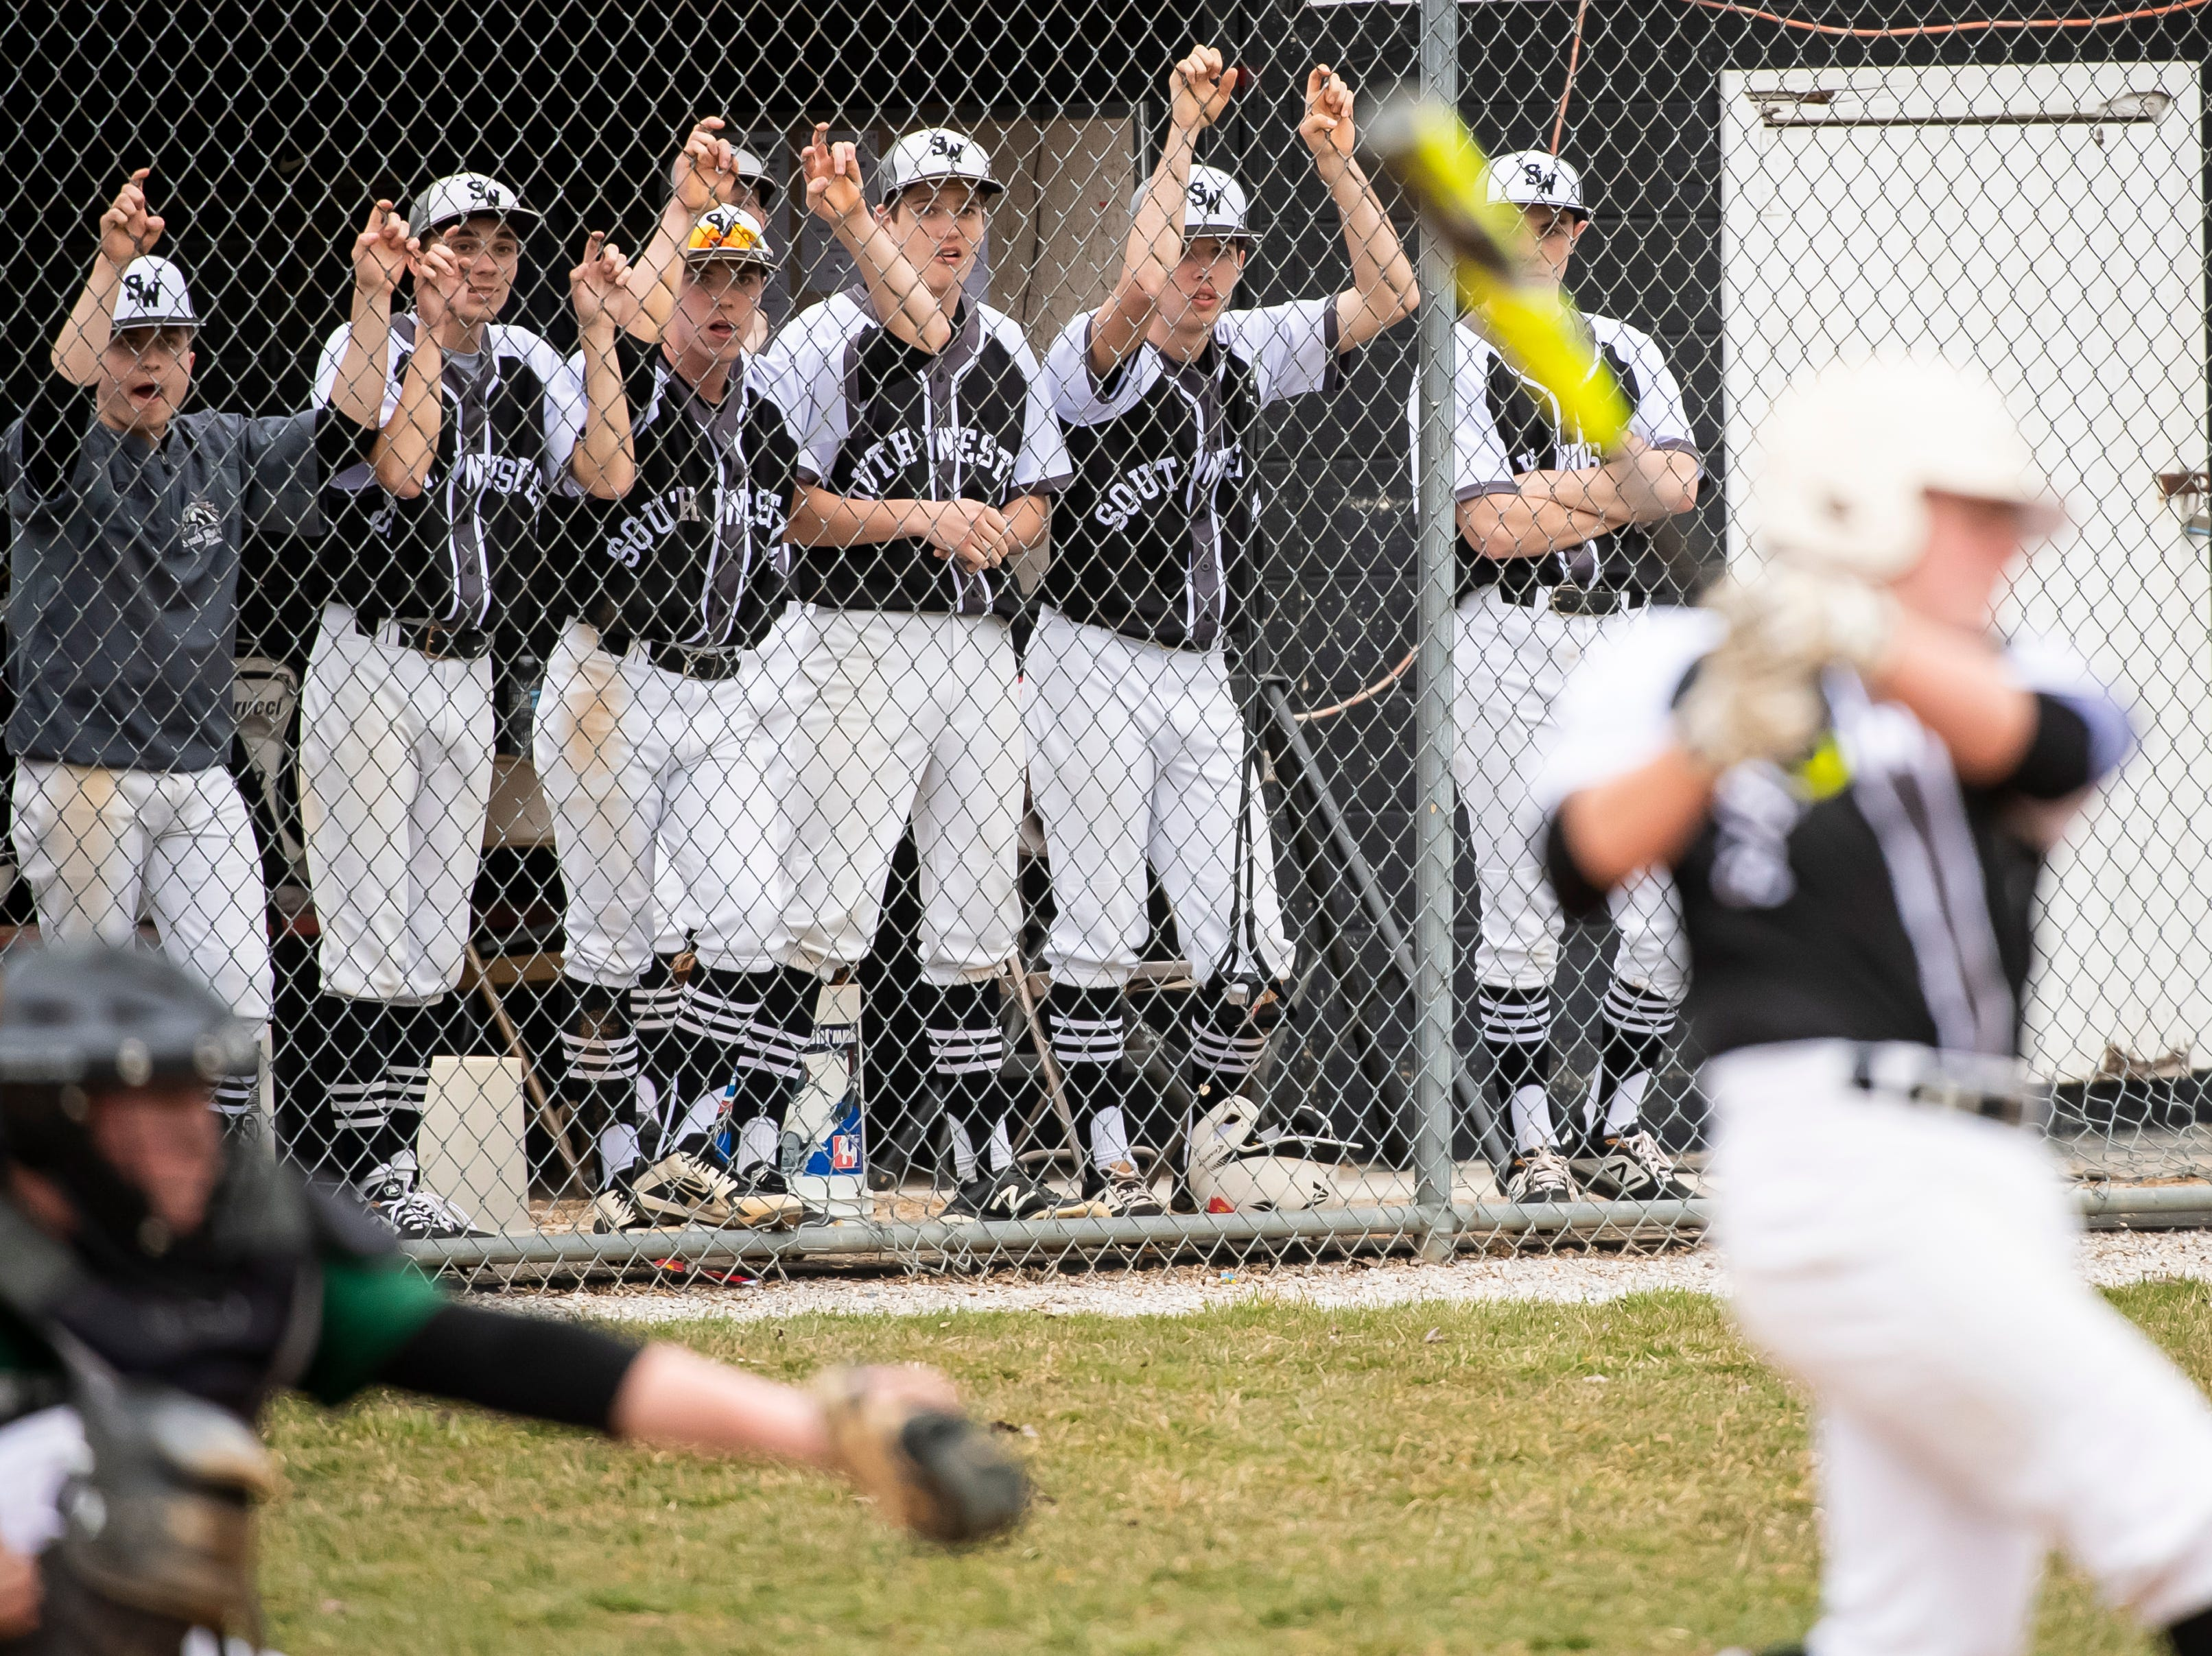 The South Western dugout watches as Ethan Stalnecker takes a swing during a game against Carlisle in Hanover on Friday, March 29, 2019. The Mustangs won 11-9.